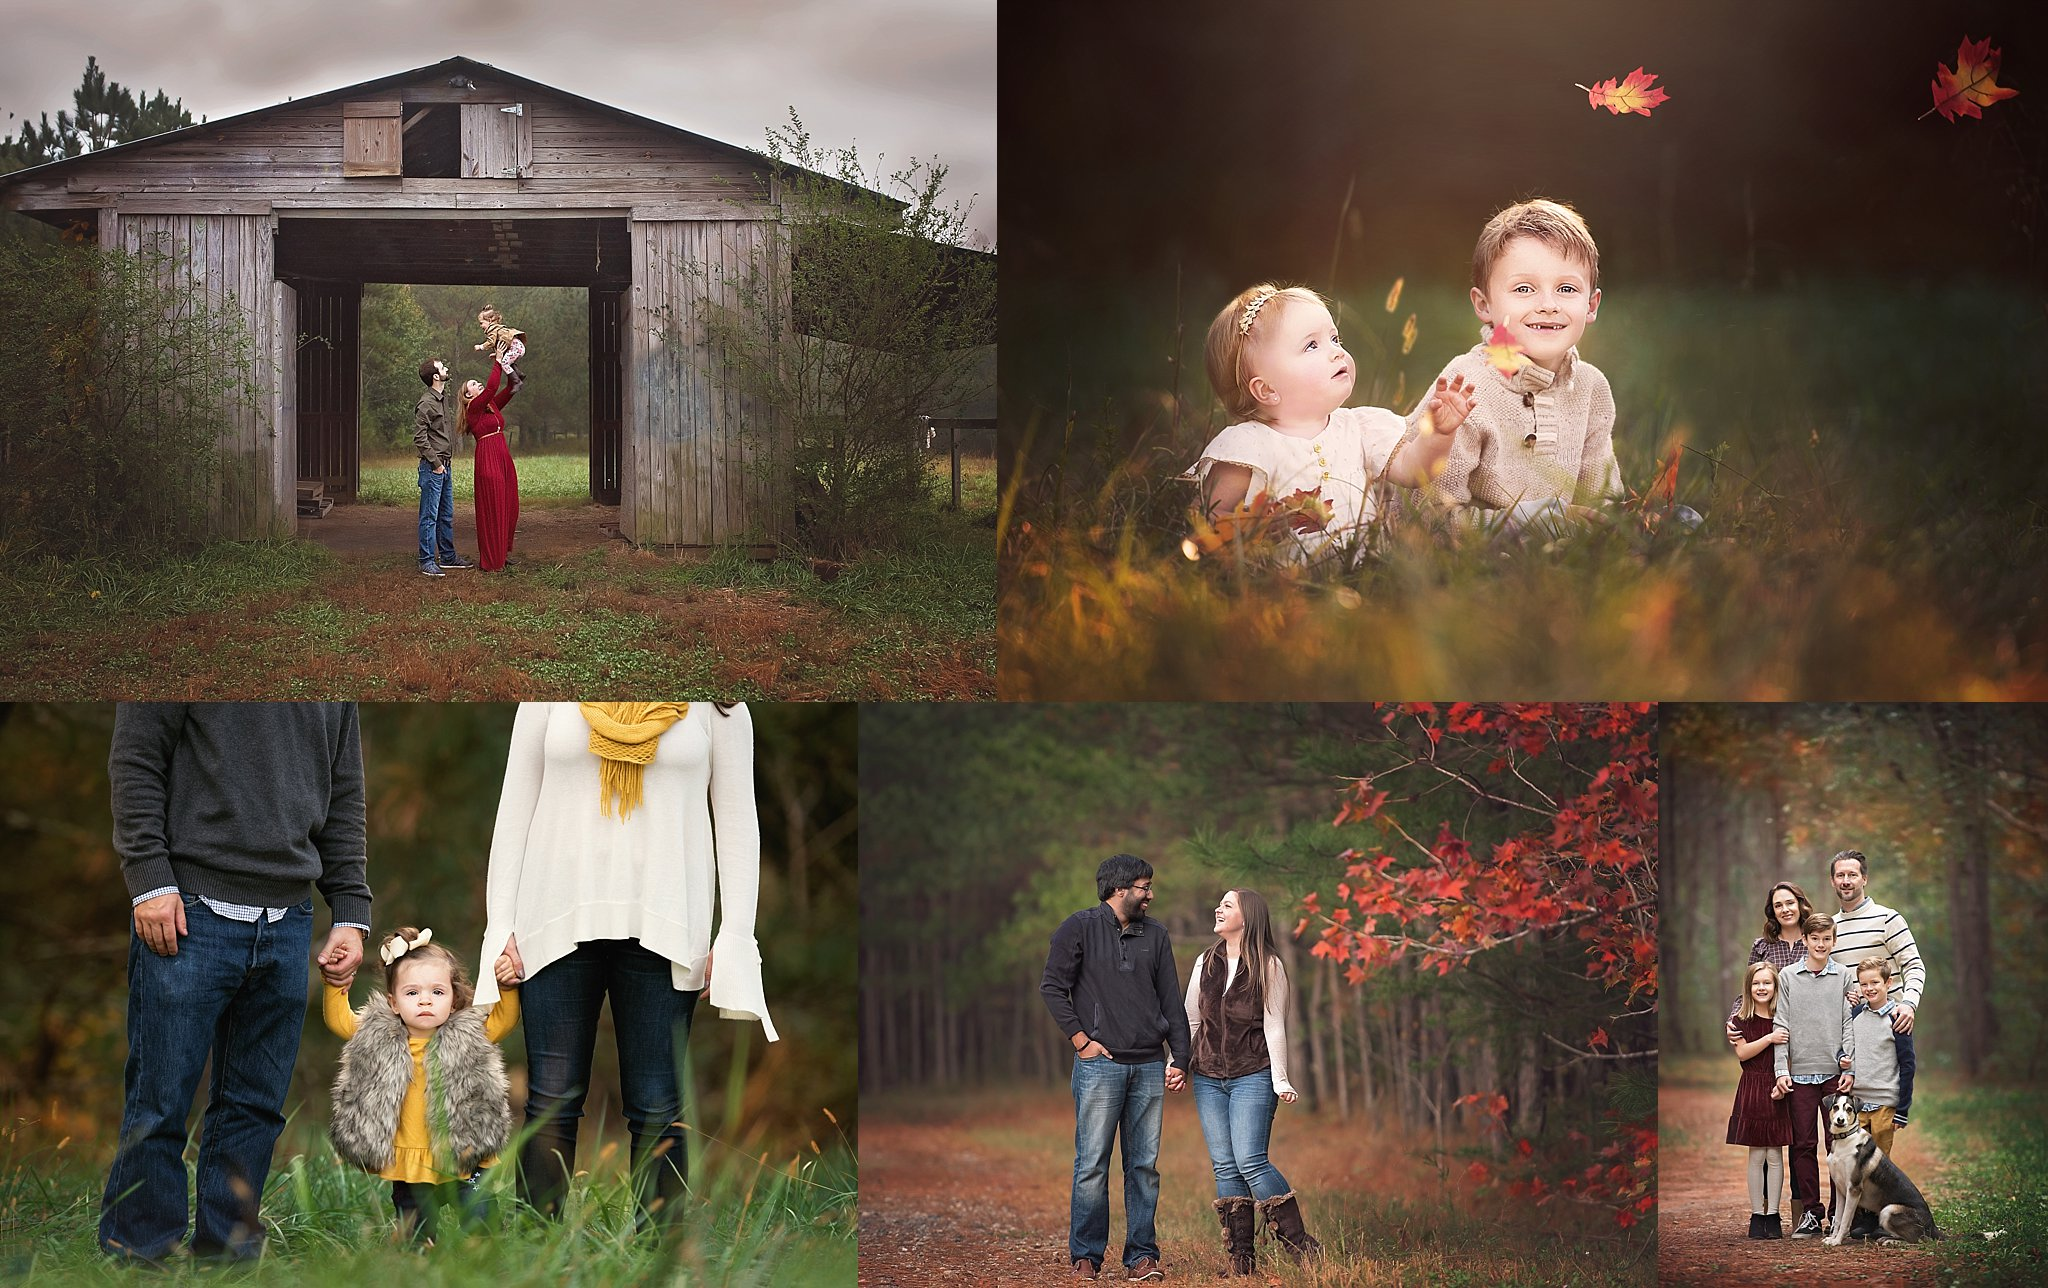 Birmingham Park- Milton,Ga Gorgeous fall back drops, open fields, pathways and rustic barn. October 19th and October 20th EVENING SESSIONS ONLY.  20 min session/6 digital files with option to purchase more/ $250  BOOK NOW